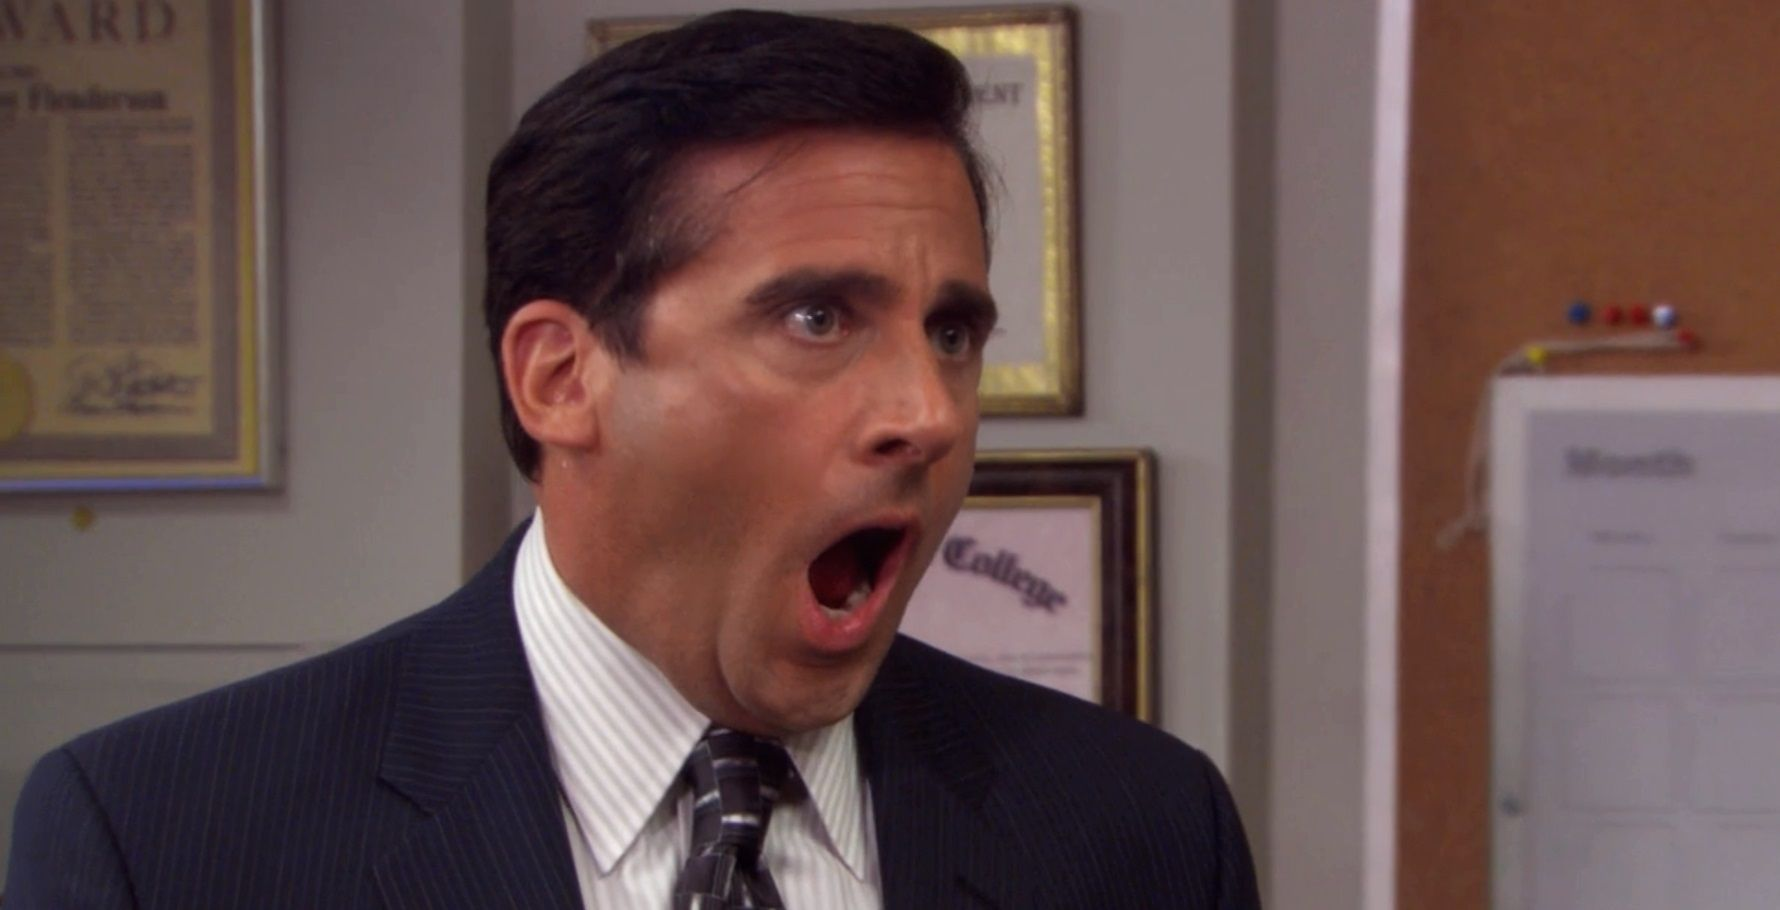 The Office: The 10 Best Michael Scott Quotes | ScreenRant